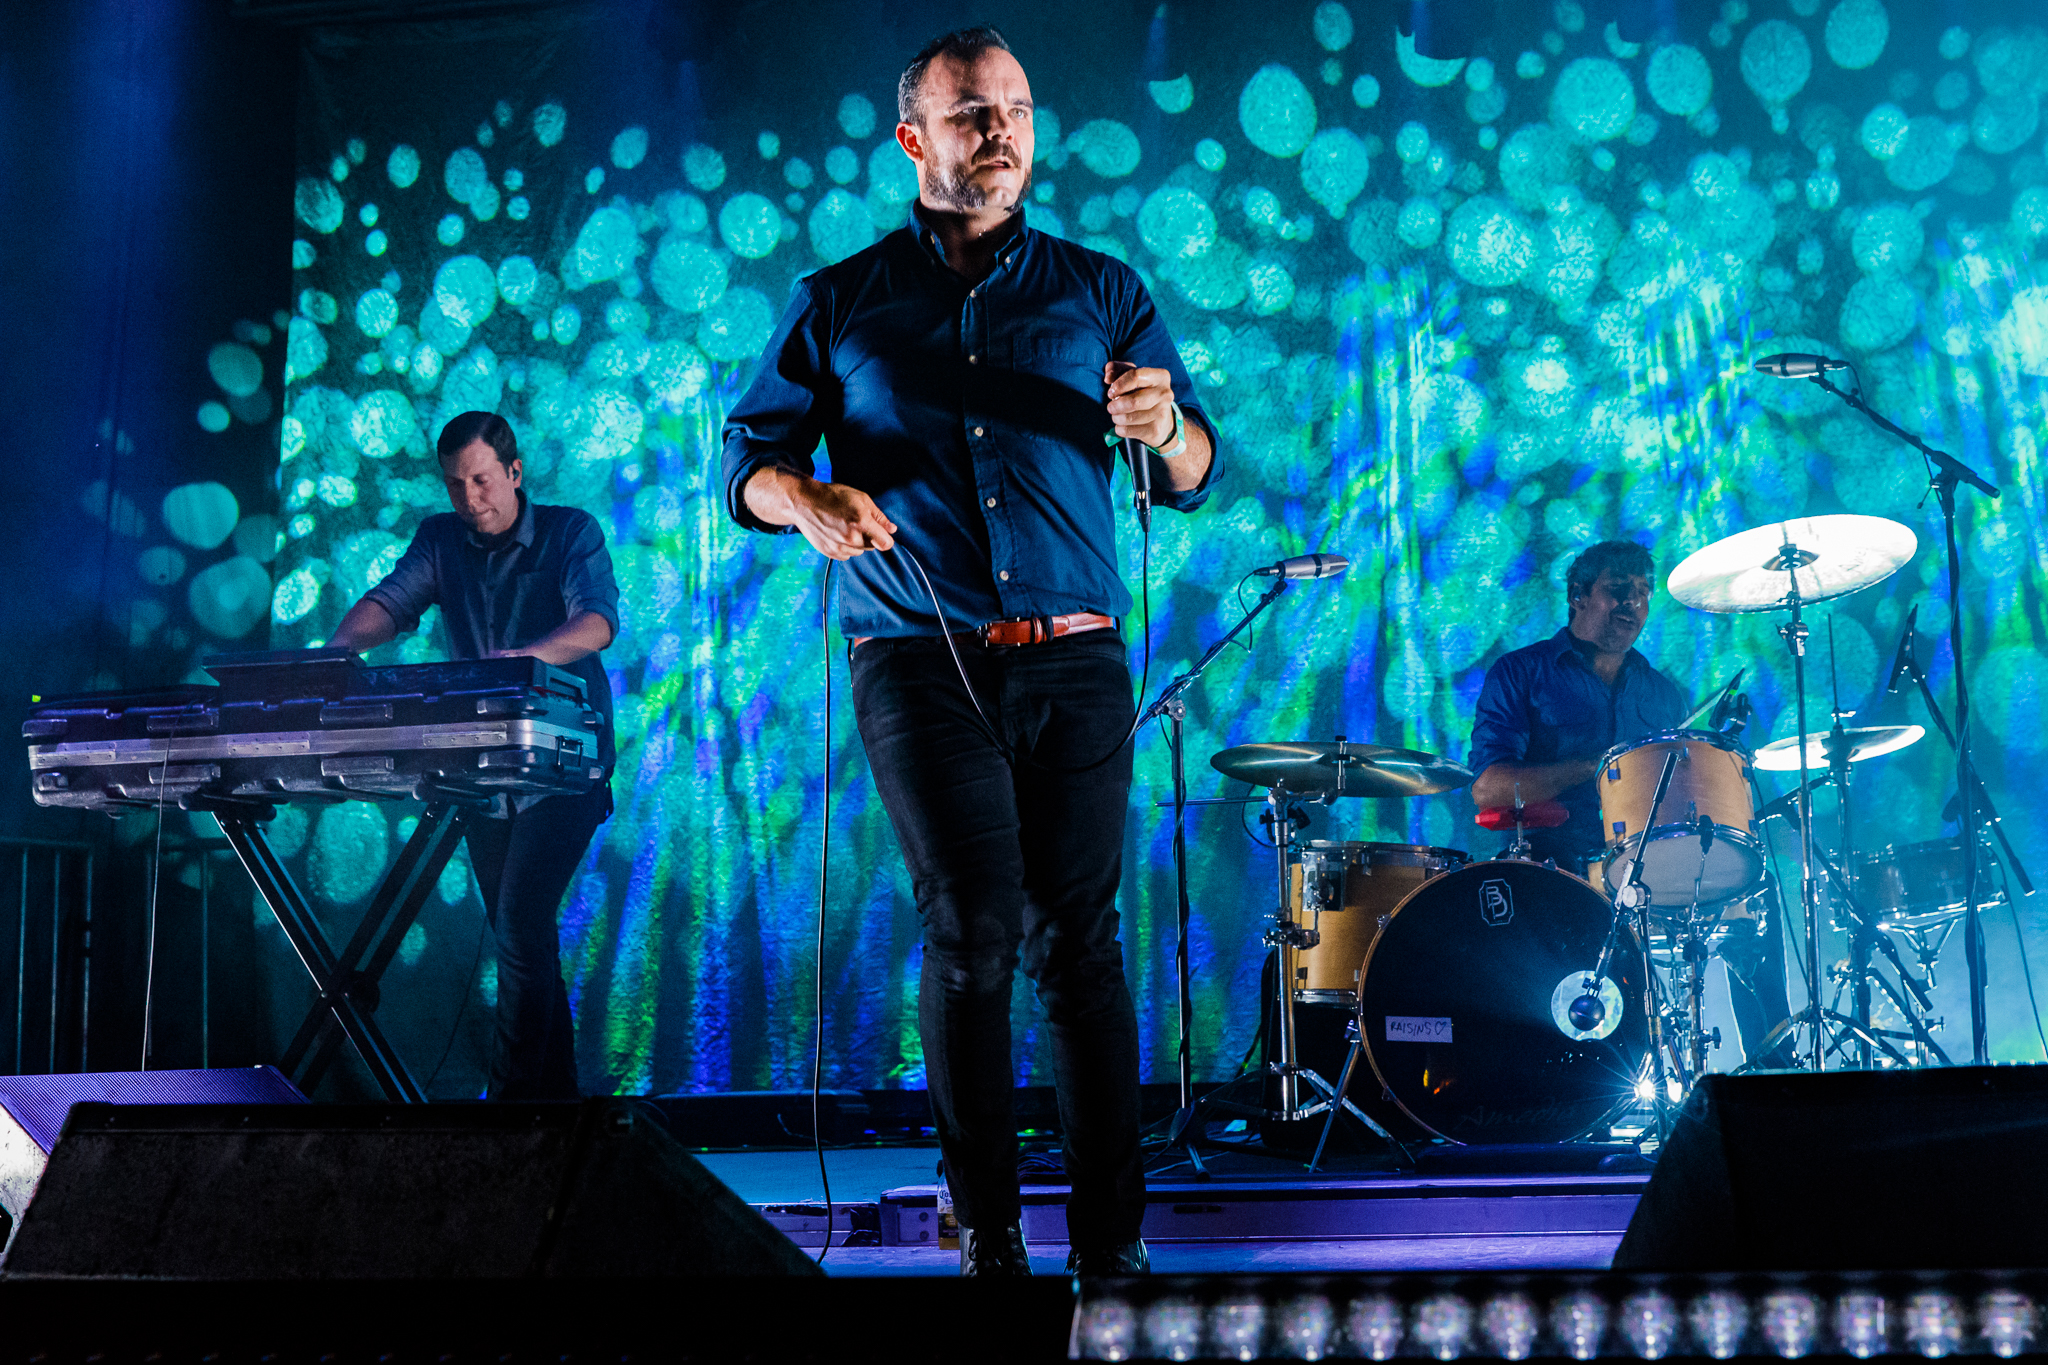 Future Islands performing at Hopscotch Music Festival 2017 in Raleigh, NC - 9/8/2017 (photo by Matt Condon / @arcane93)